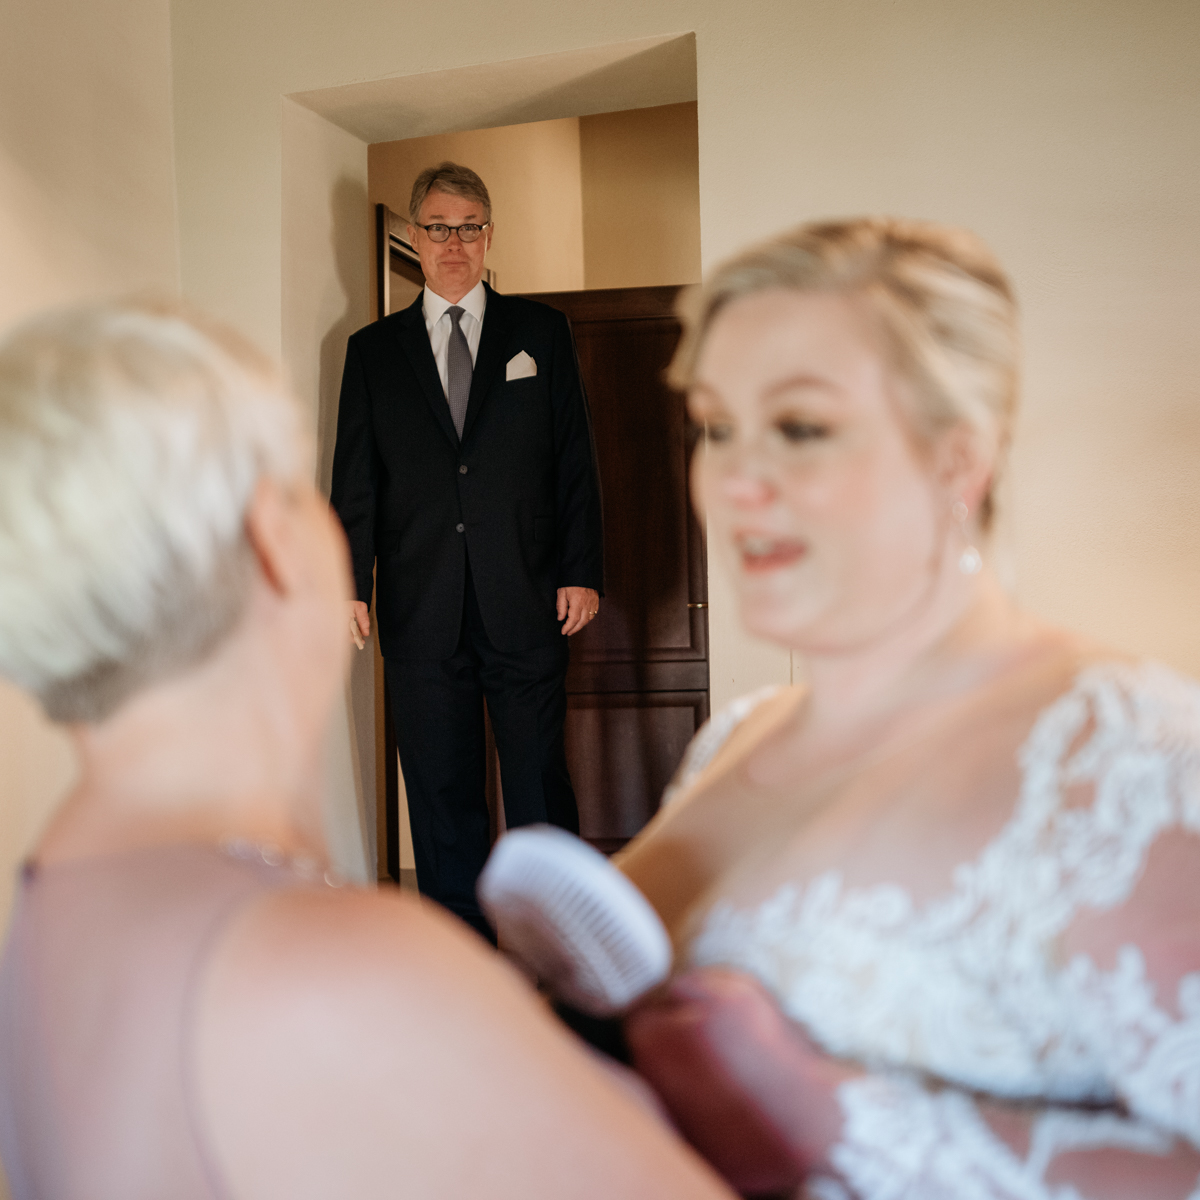 father of the bride looking at her for the first time